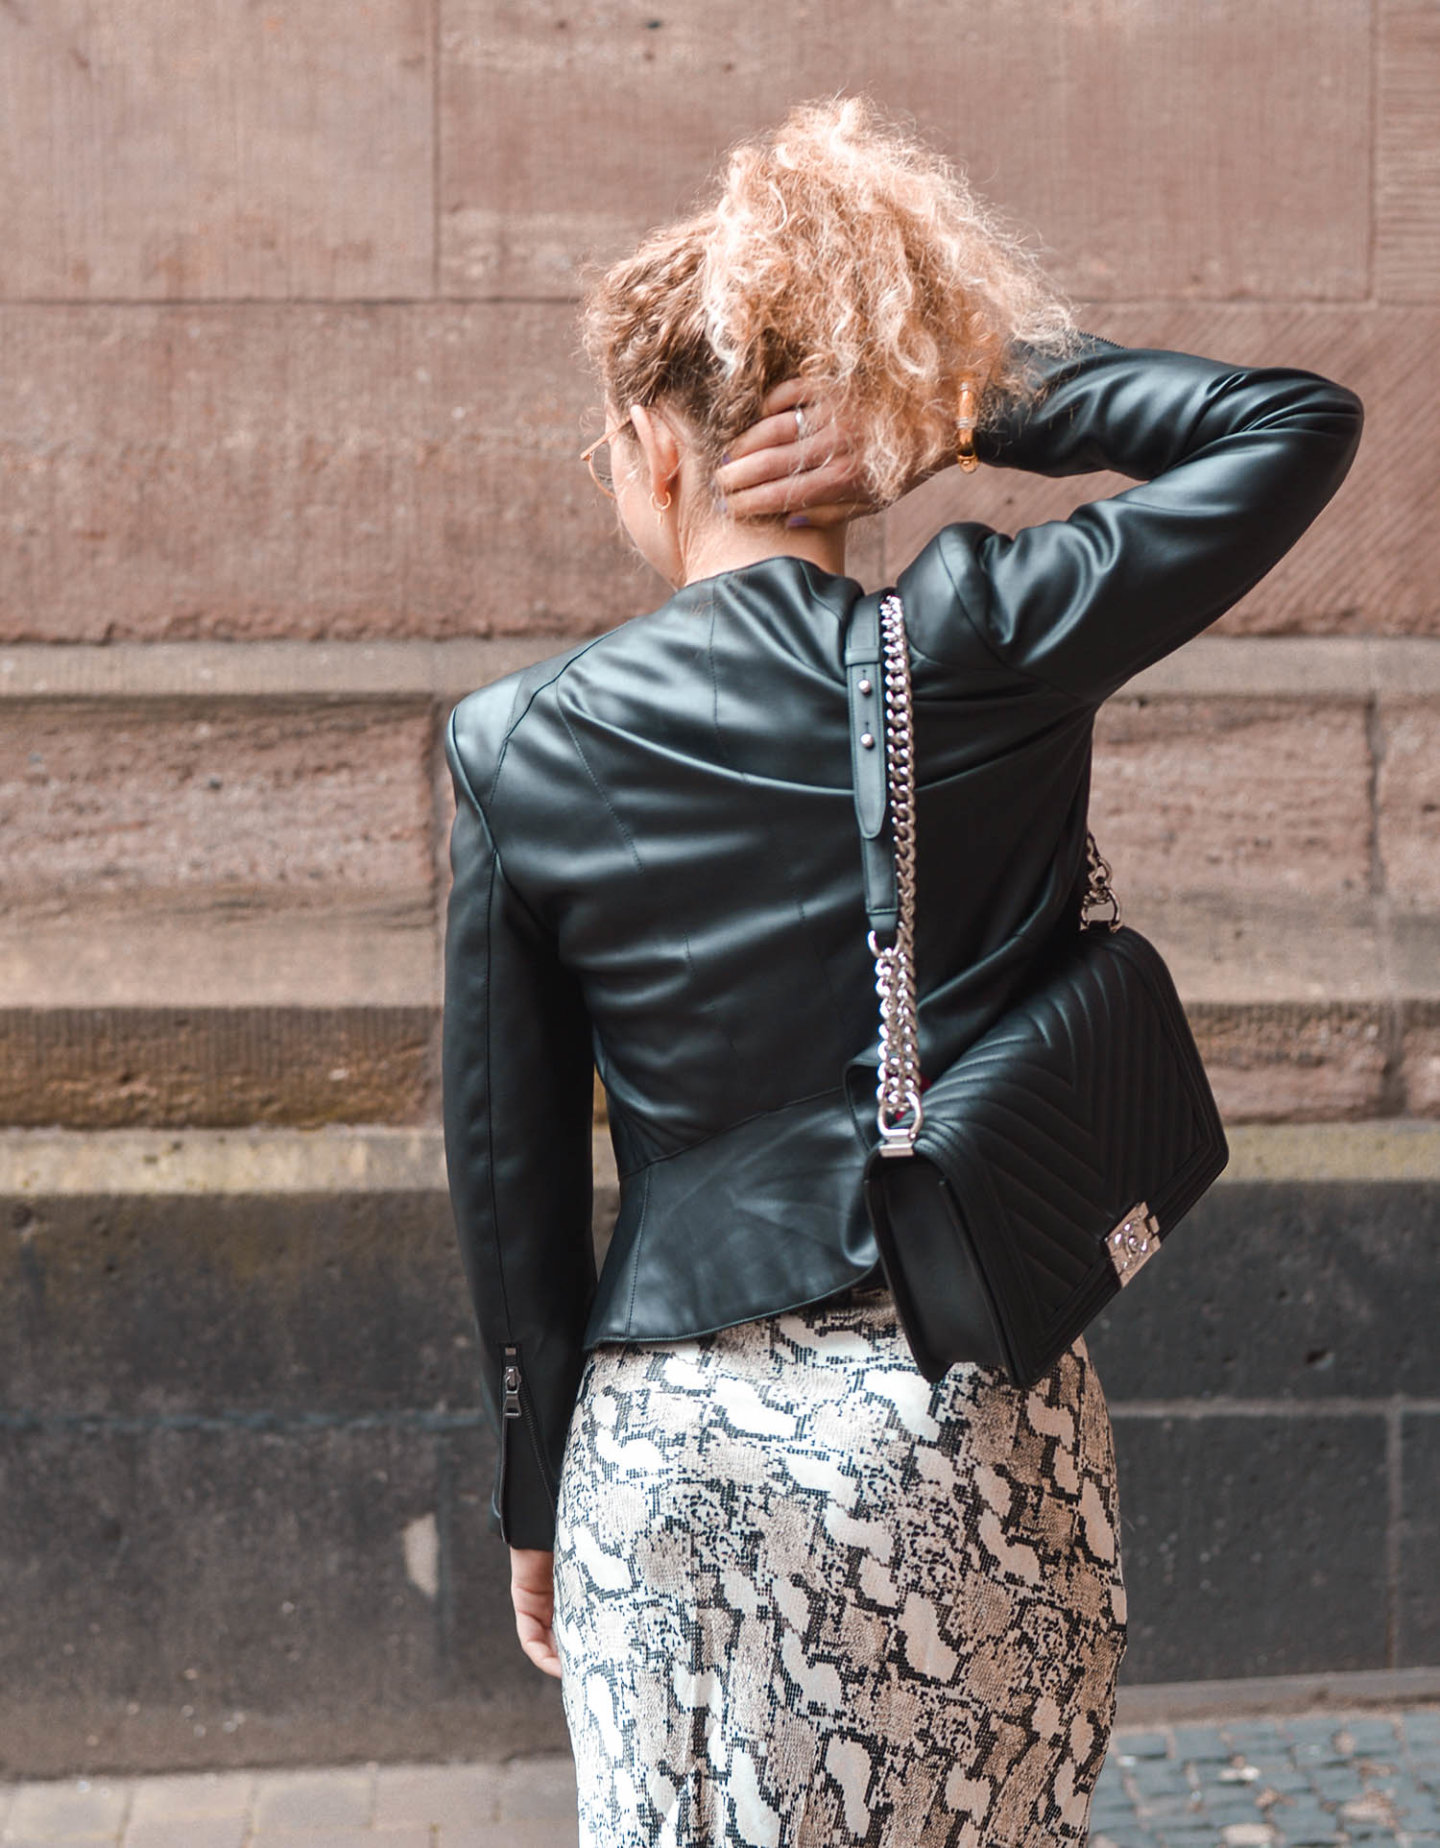 Lederjacke mit Chanel boy bag und satinrock